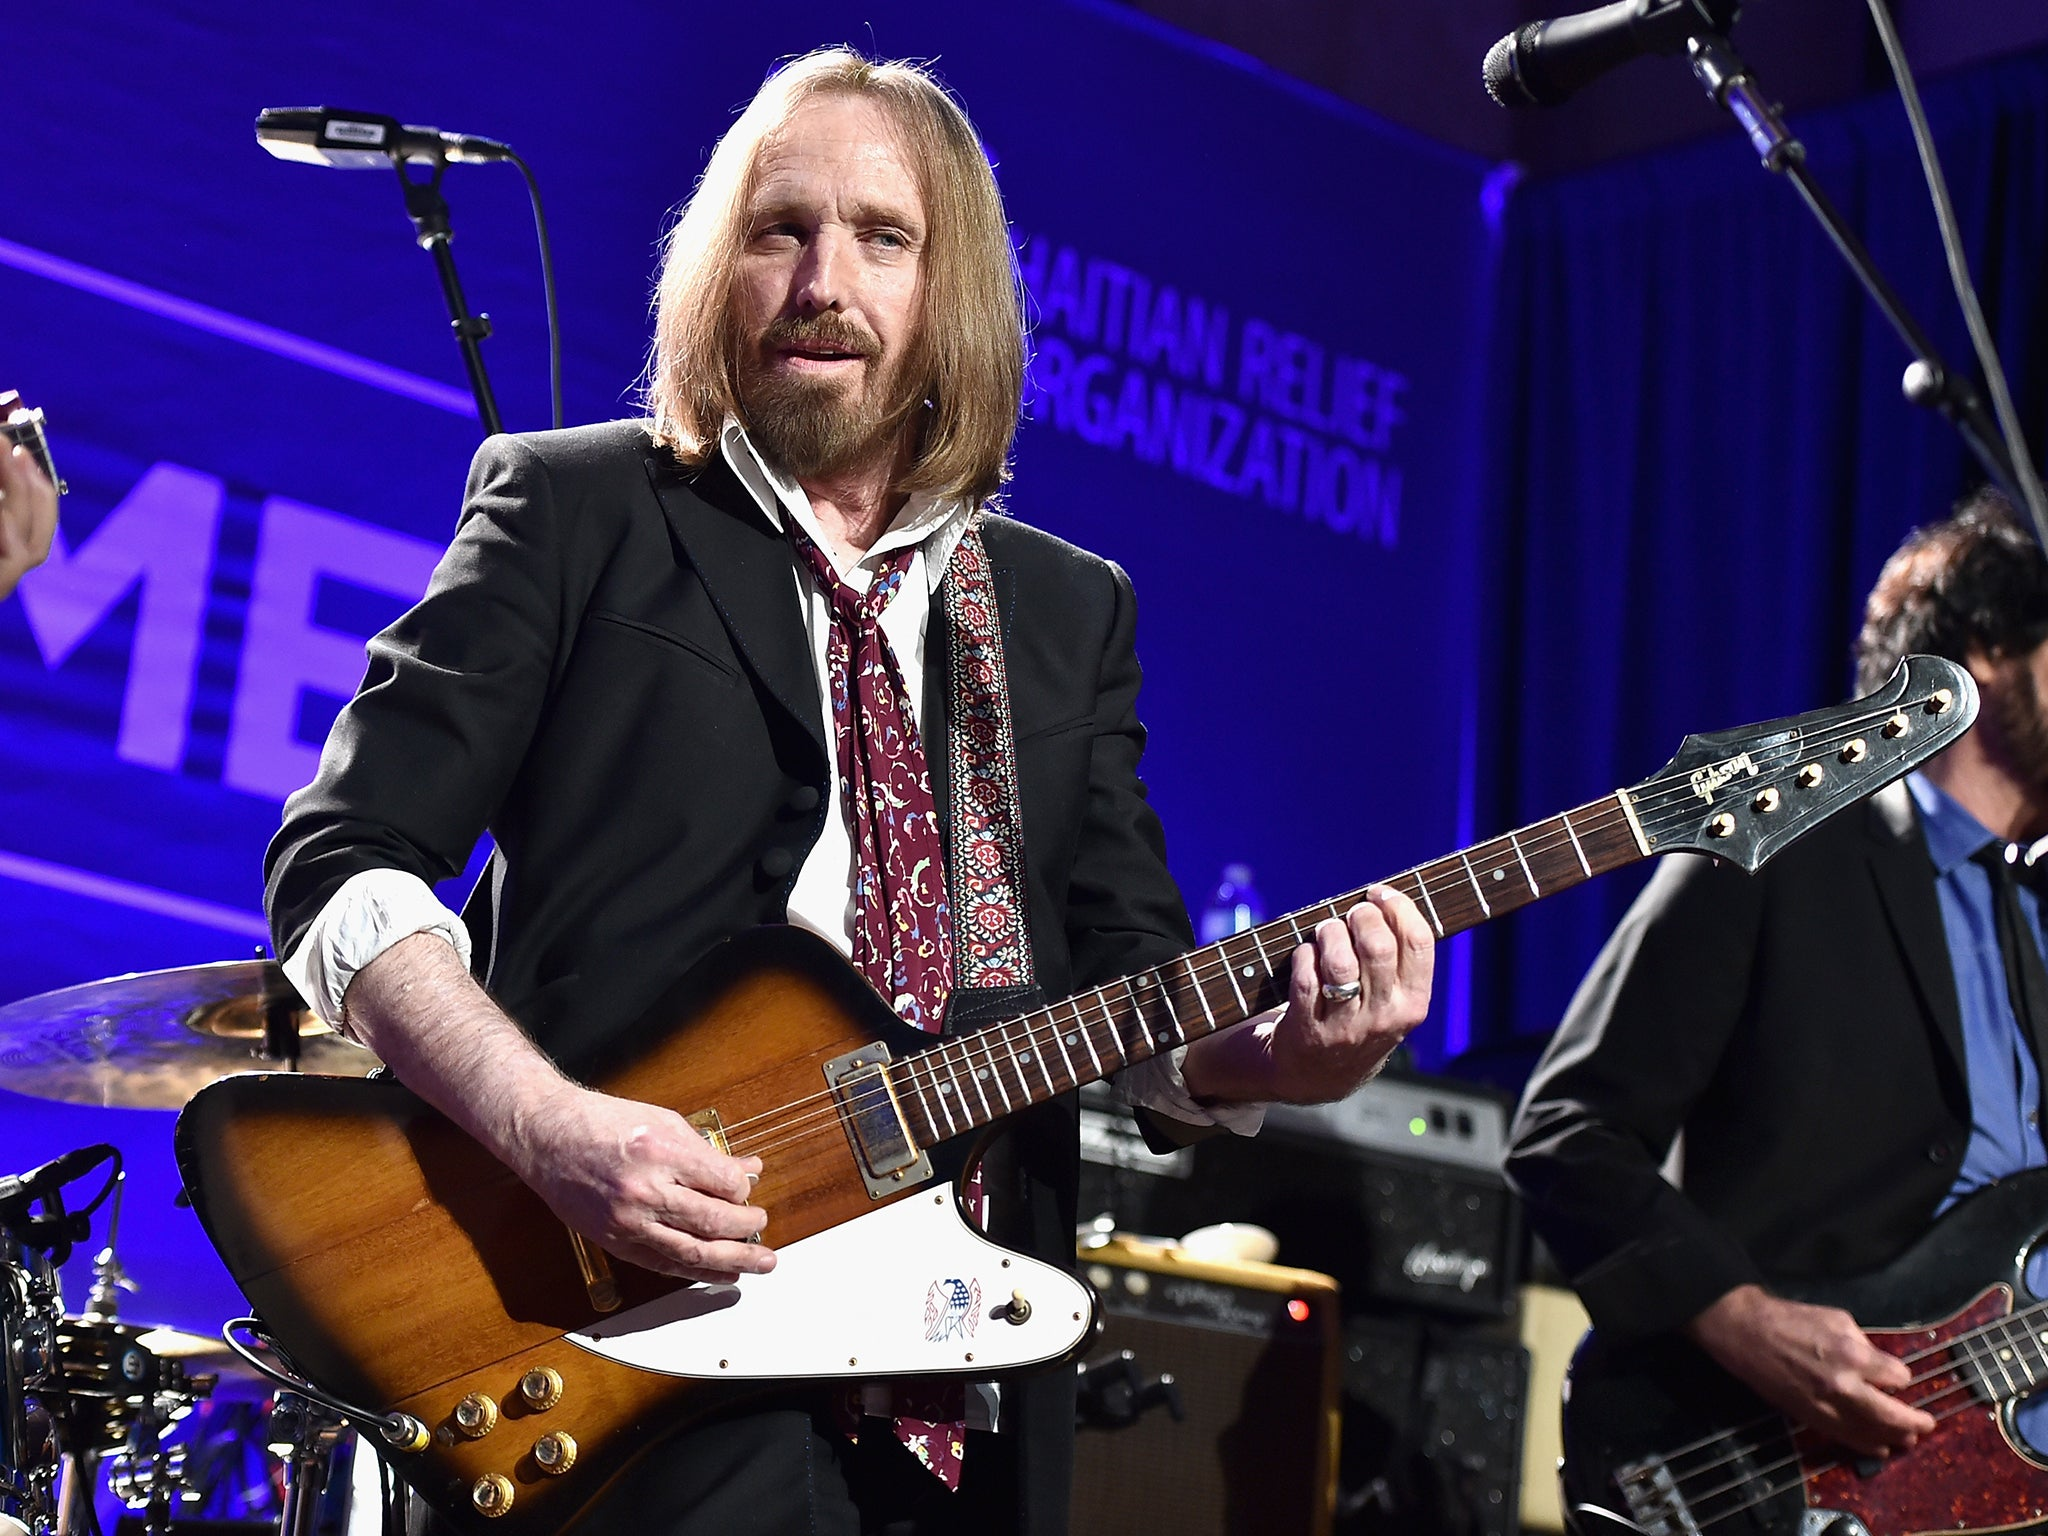 Tom Petty has been found unconscious and not breathing